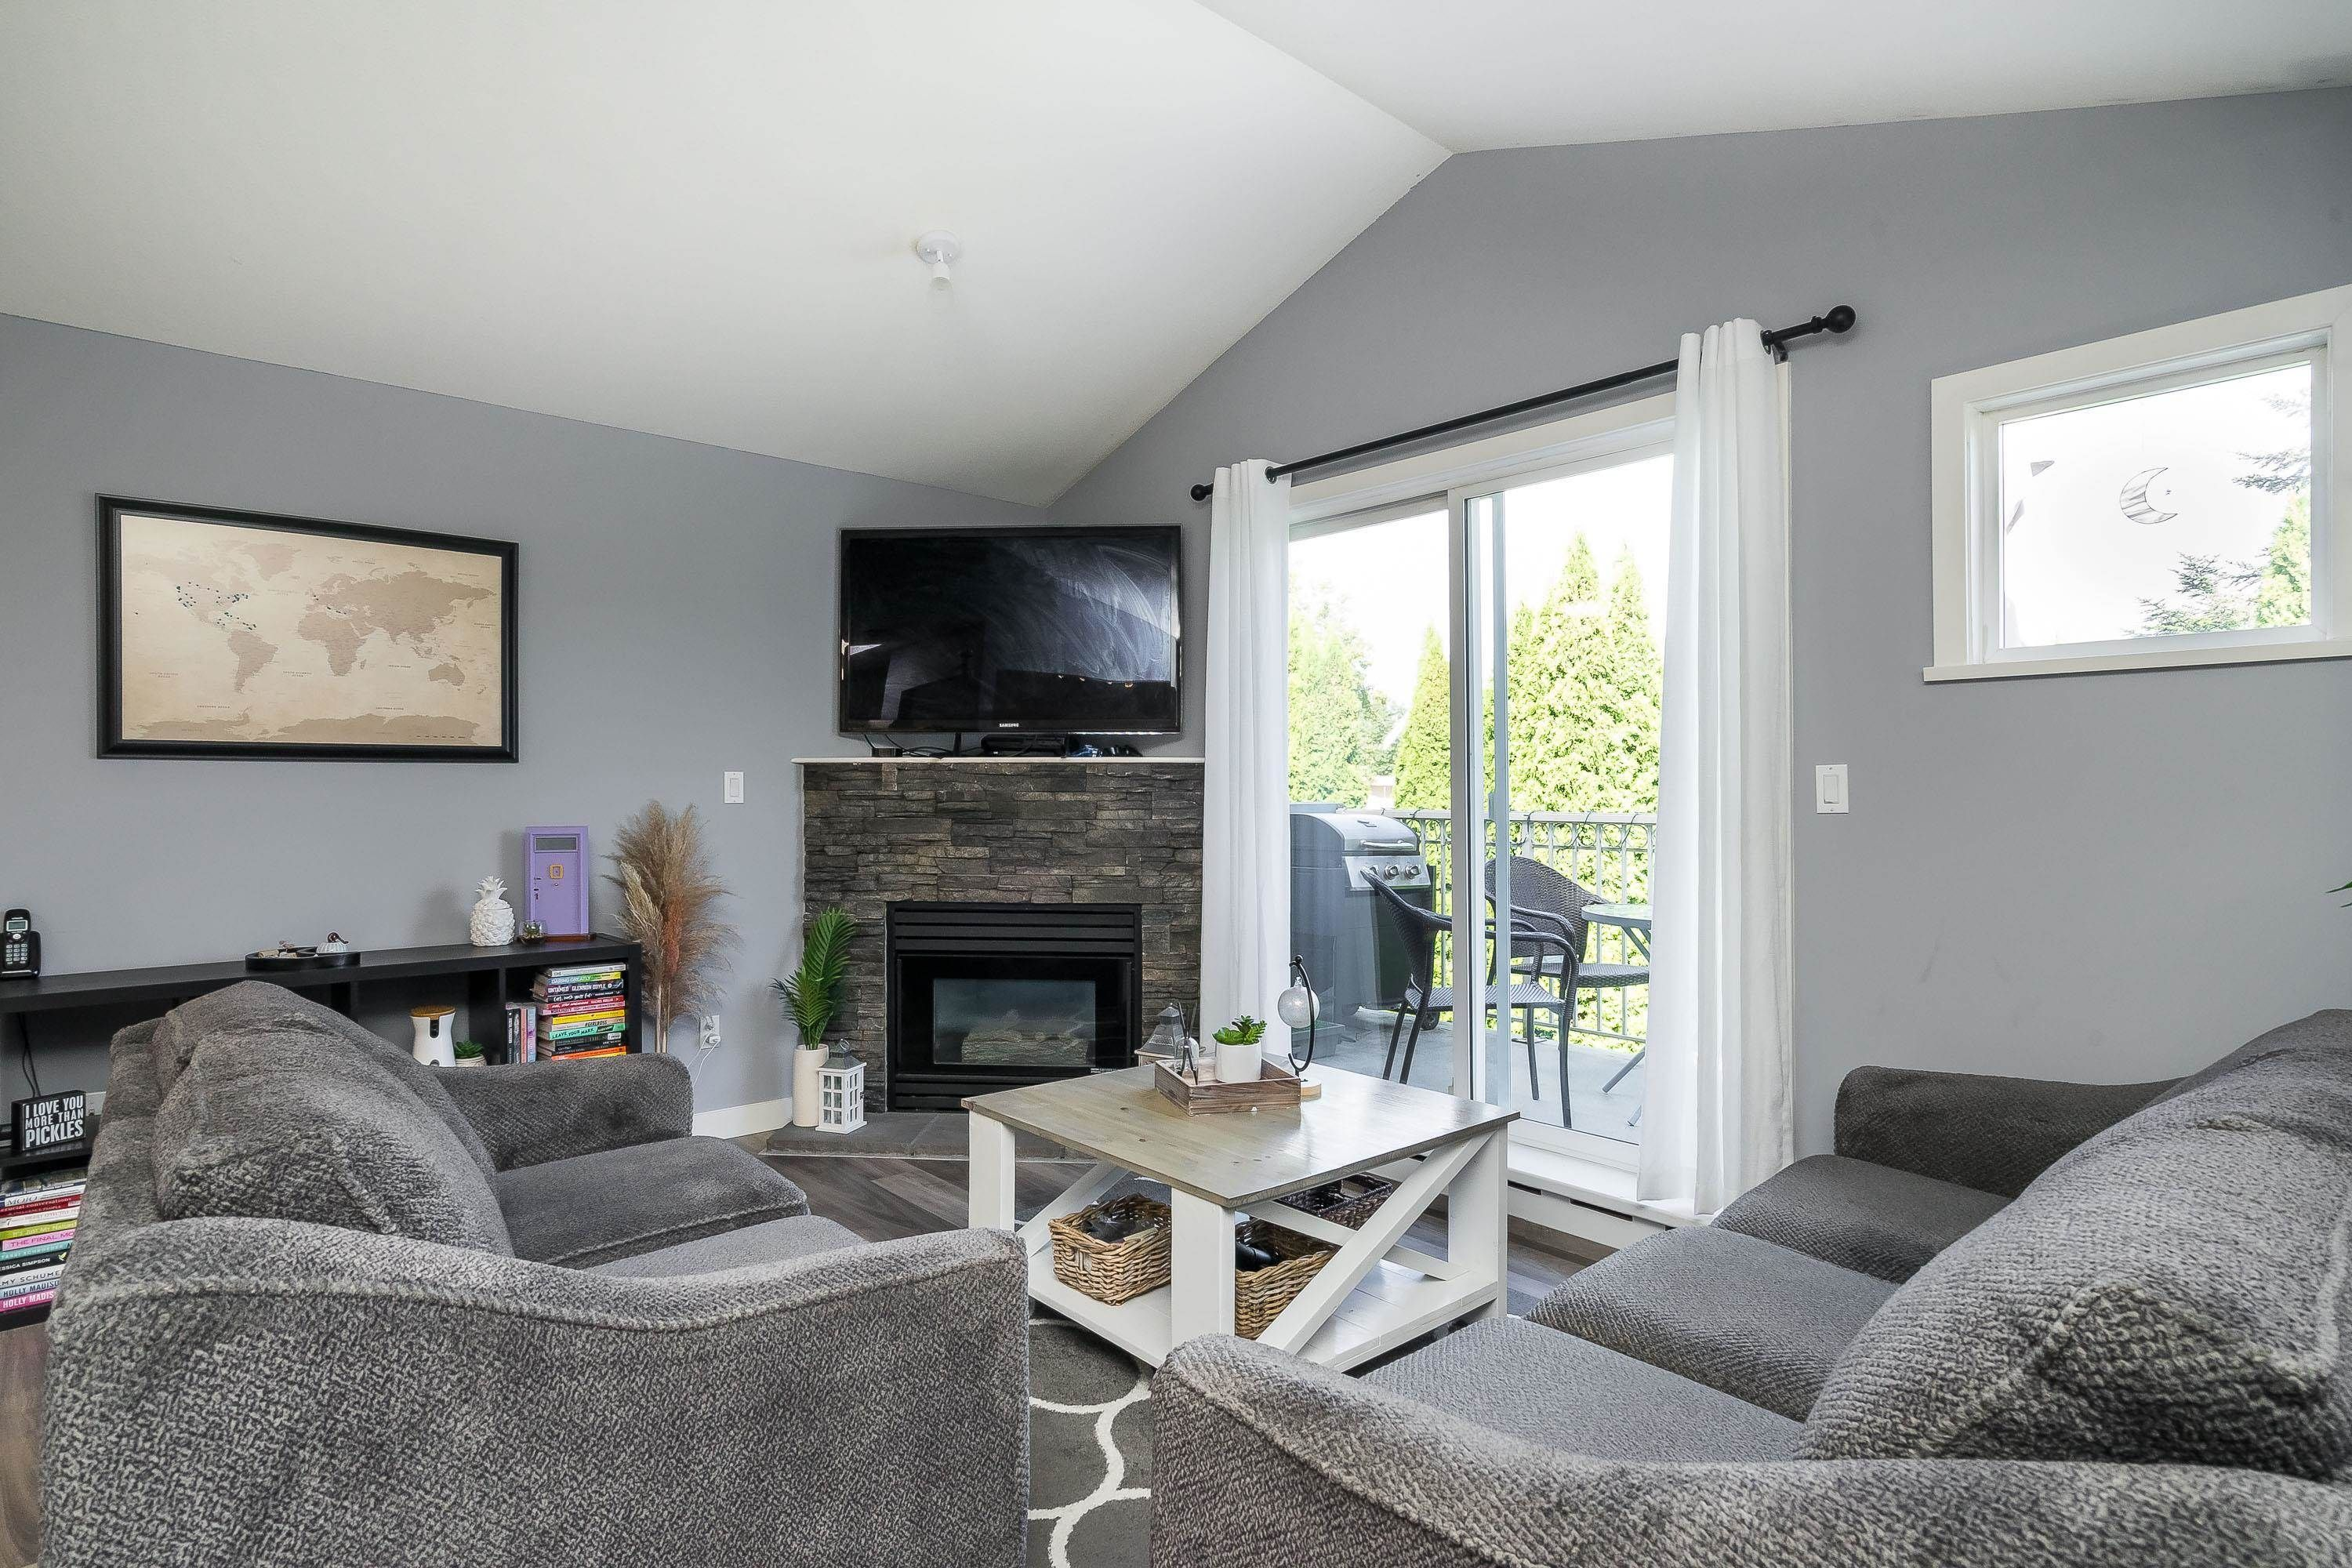 """Main Photo: 303 5909 177B Street in Surrey: Cloverdale BC Condo for sale in """"Carriage Court"""" (Cloverdale)  : MLS®# R2617763"""